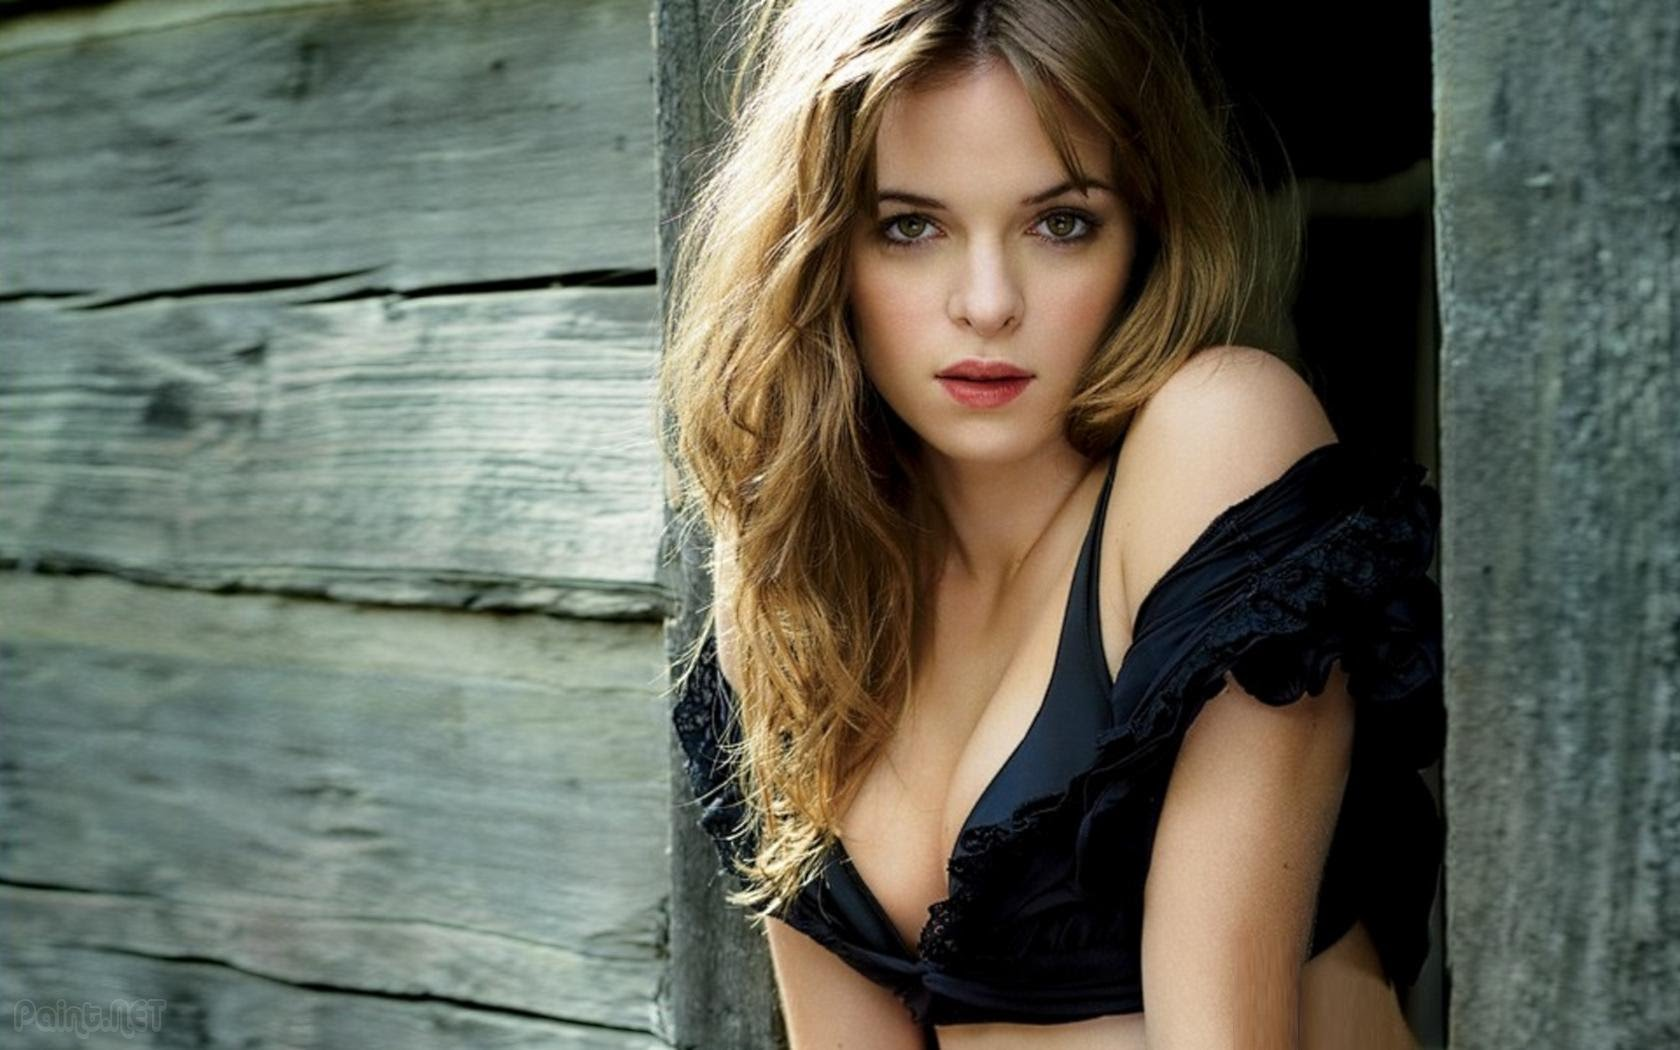 29 Hottest Instagram Pictures Of Danielle Panabaker-7644